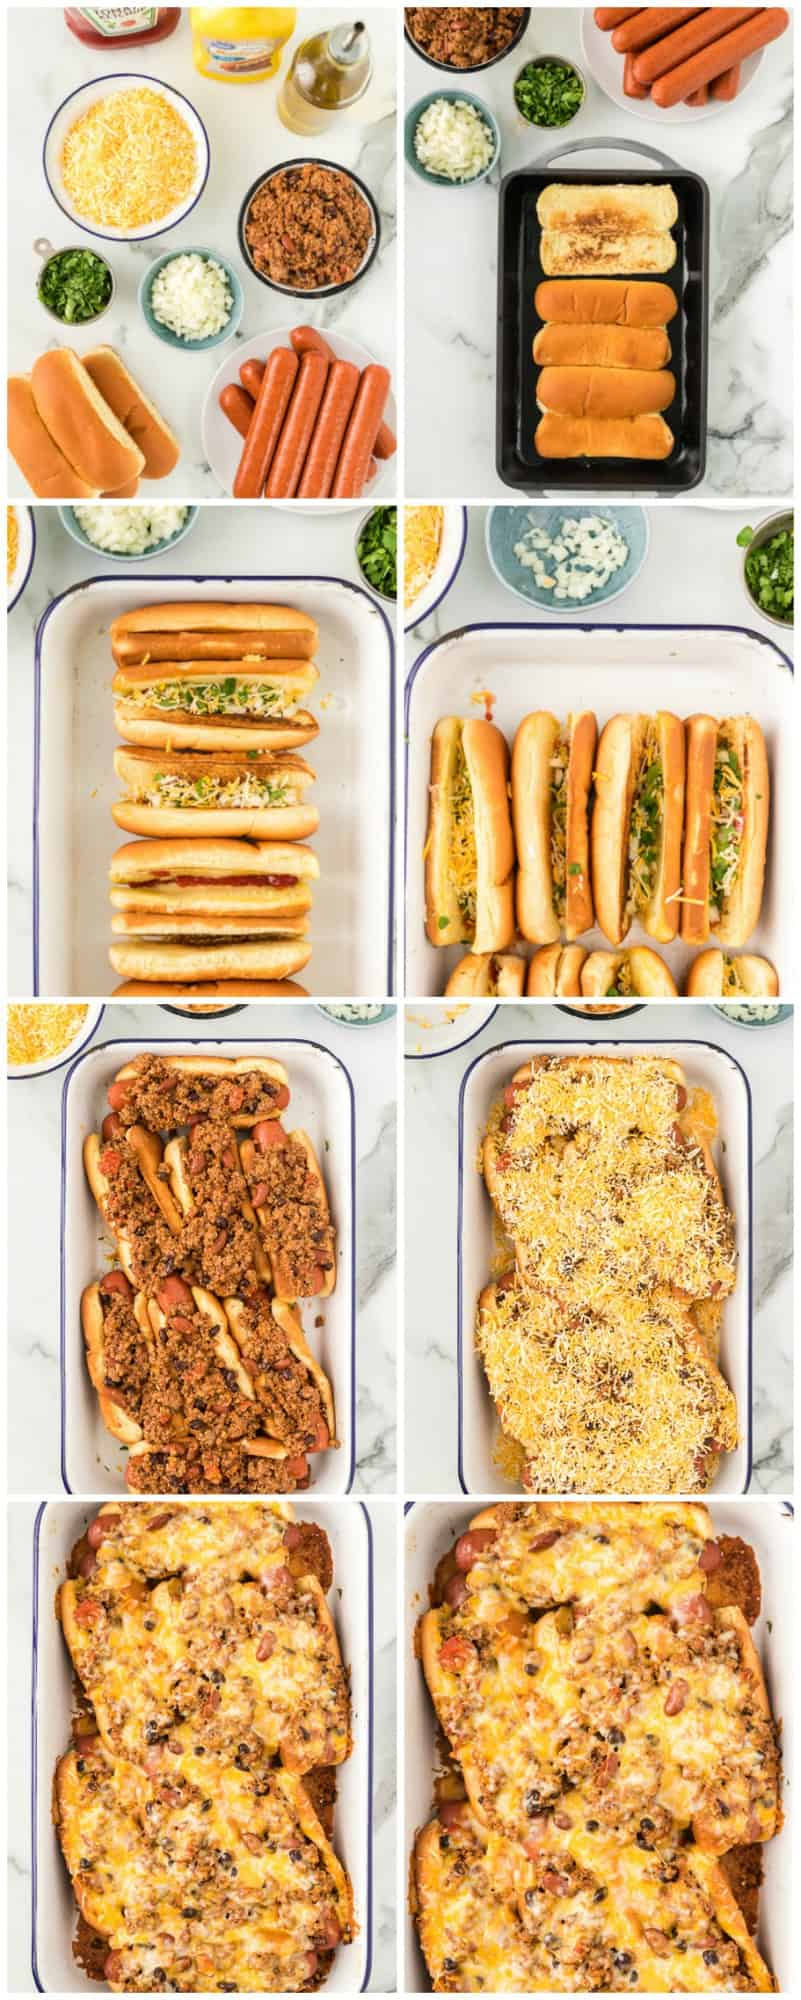 step by step photos of making chili dogs